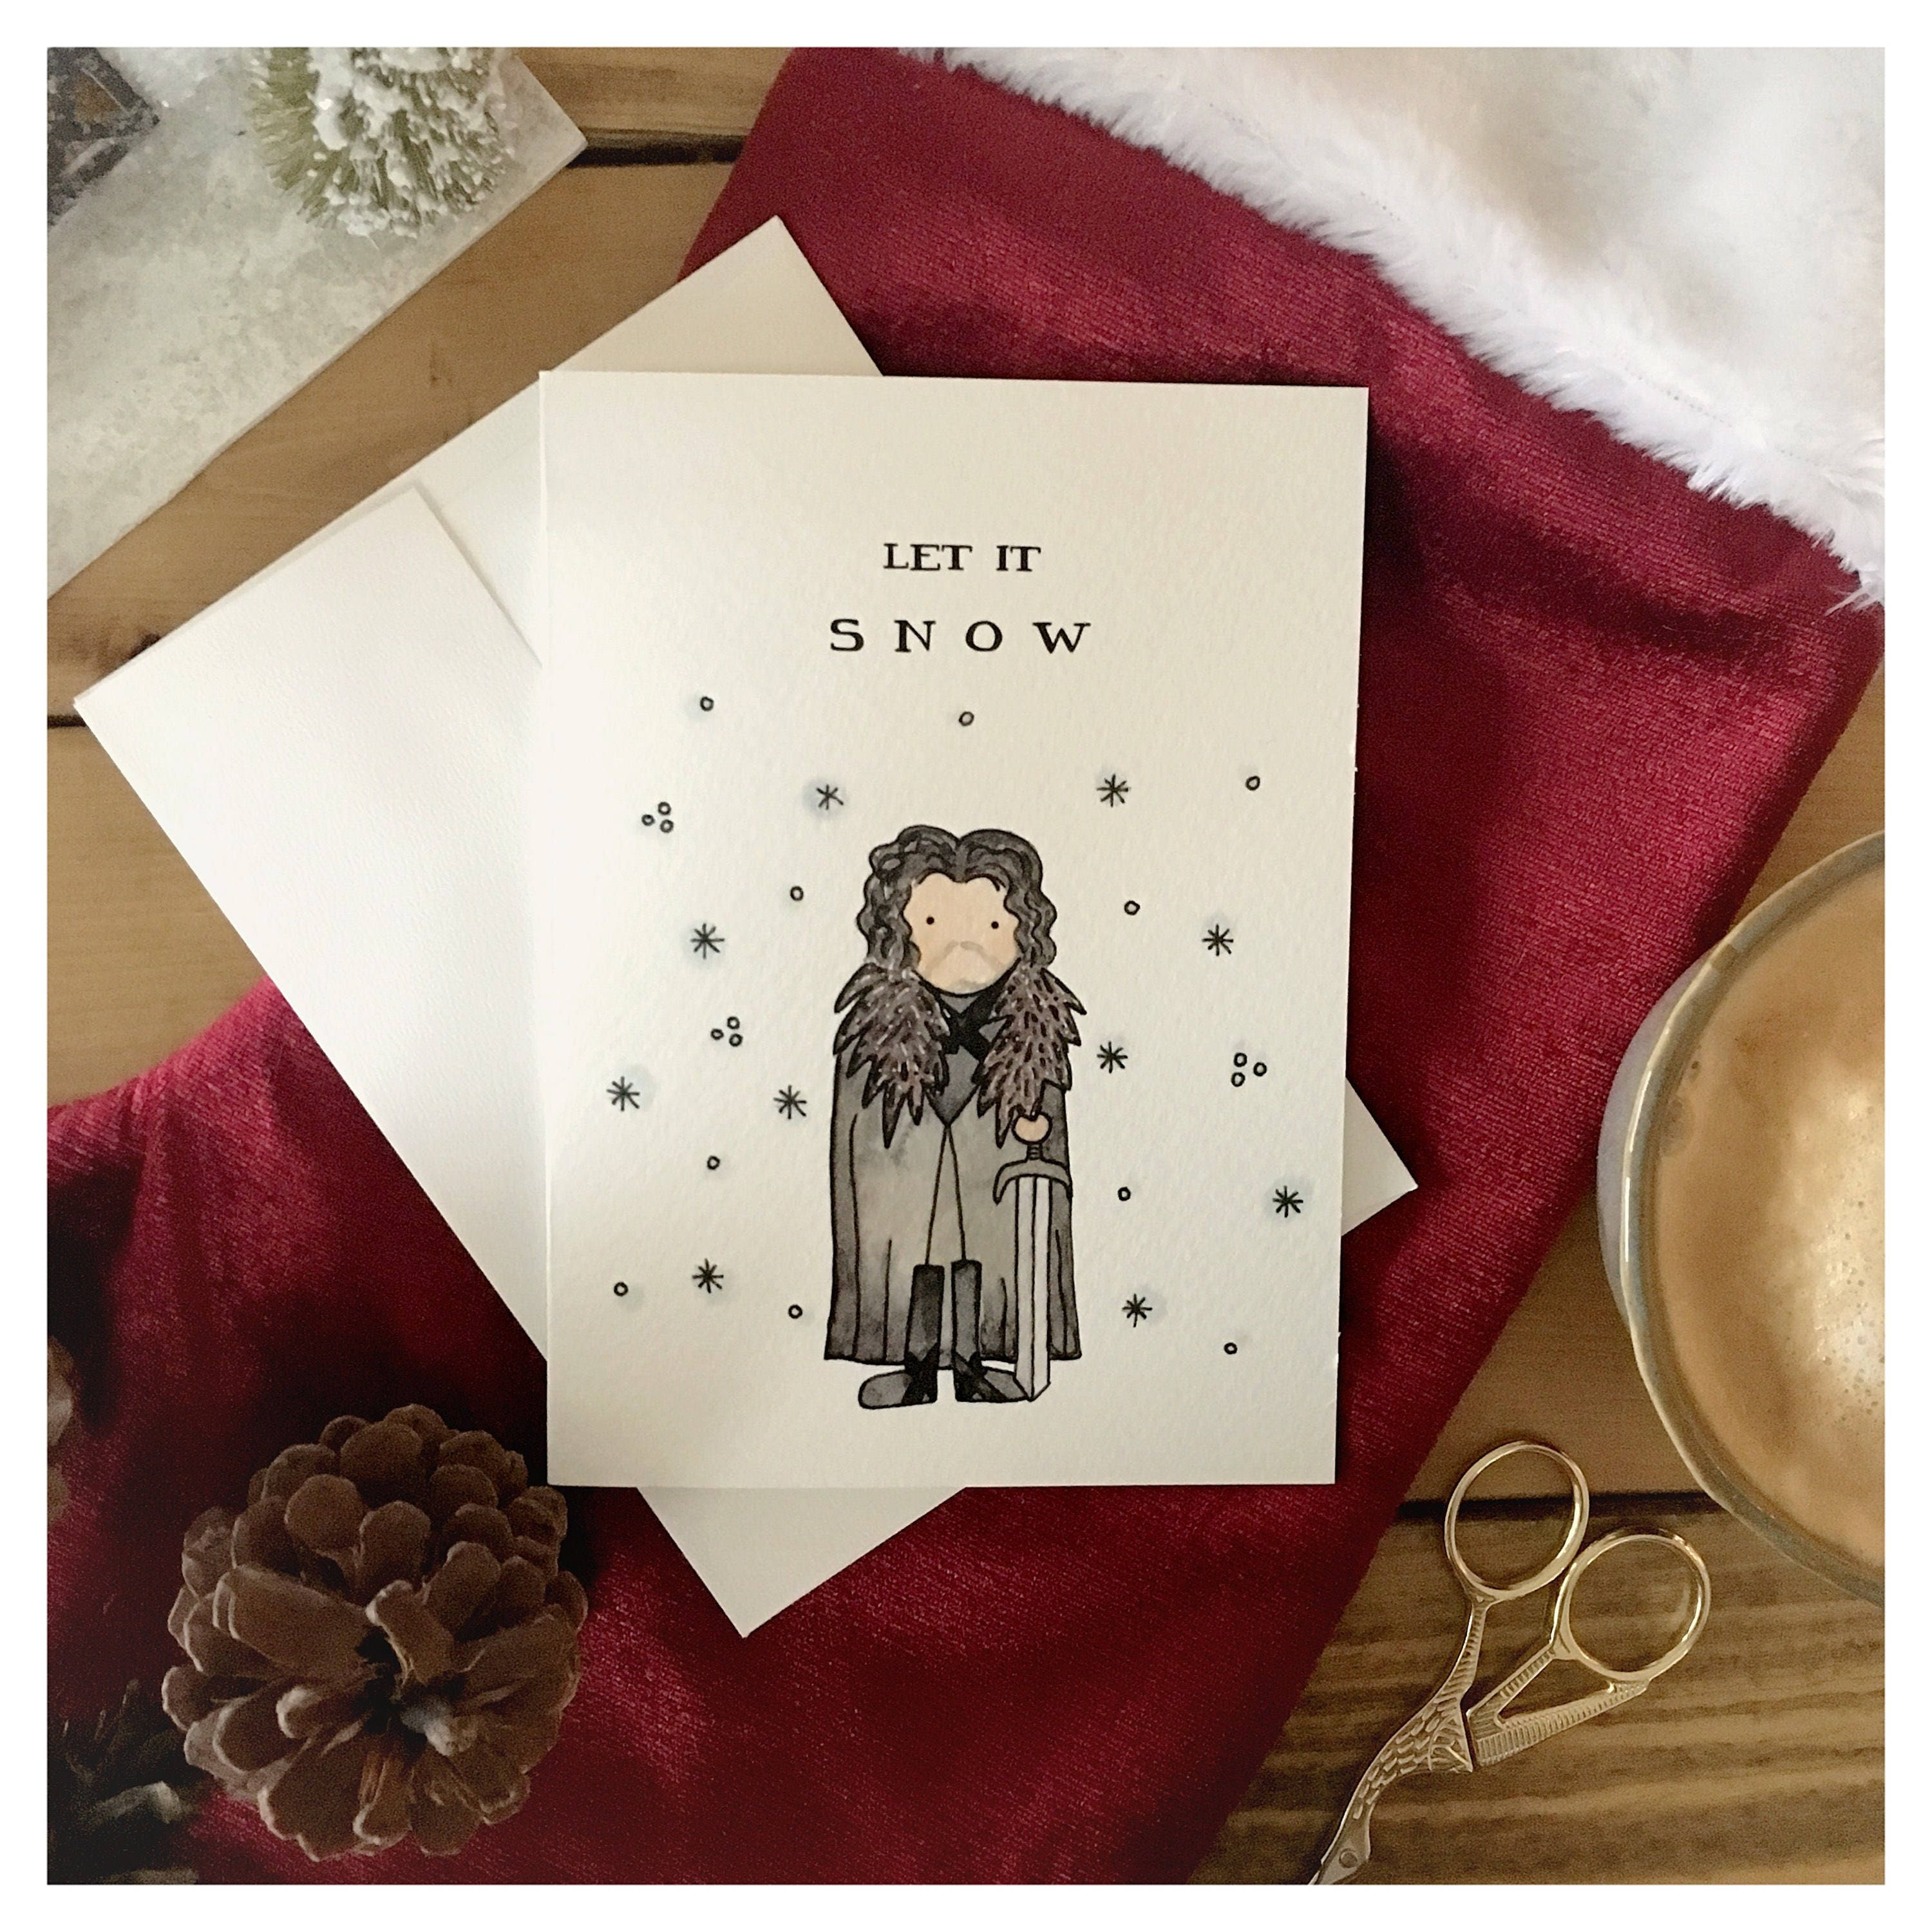 Brand-new Let it Snow // Jon Snow, Game of thrones, pun, funny card  HG42